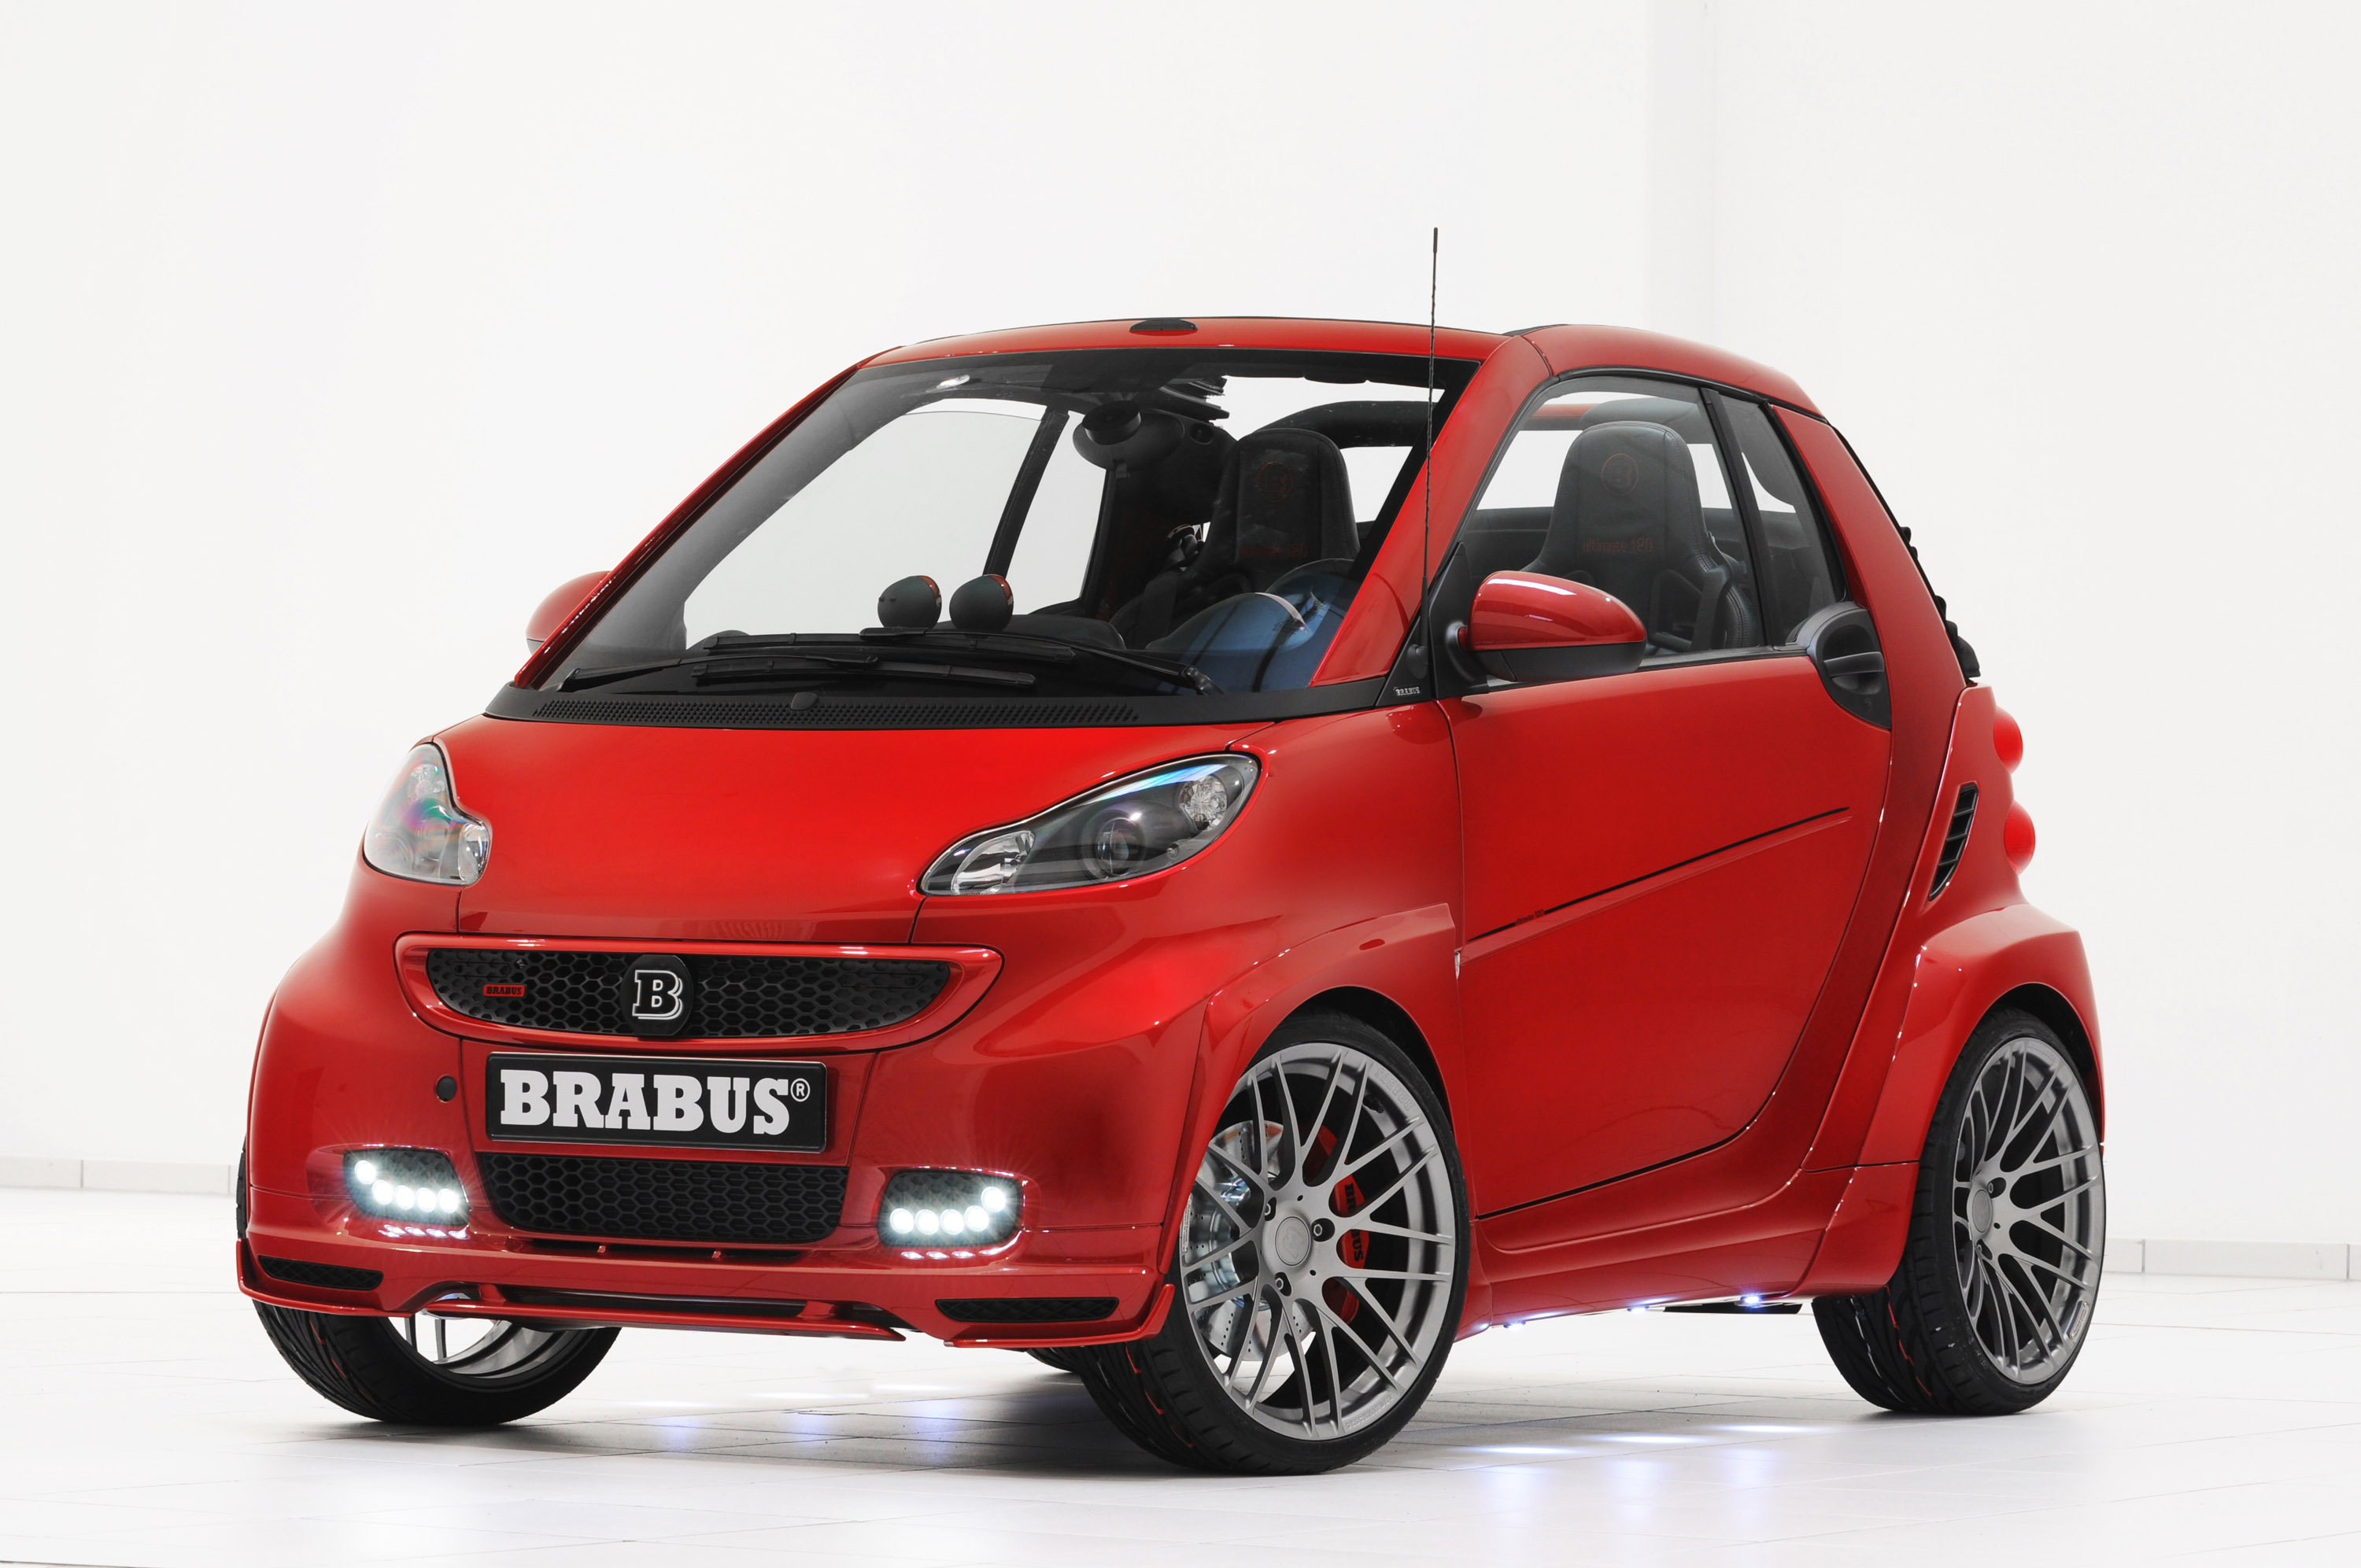 2012 brabus smart fortwo ultimate 120 cabrio. Black Bedroom Furniture Sets. Home Design Ideas